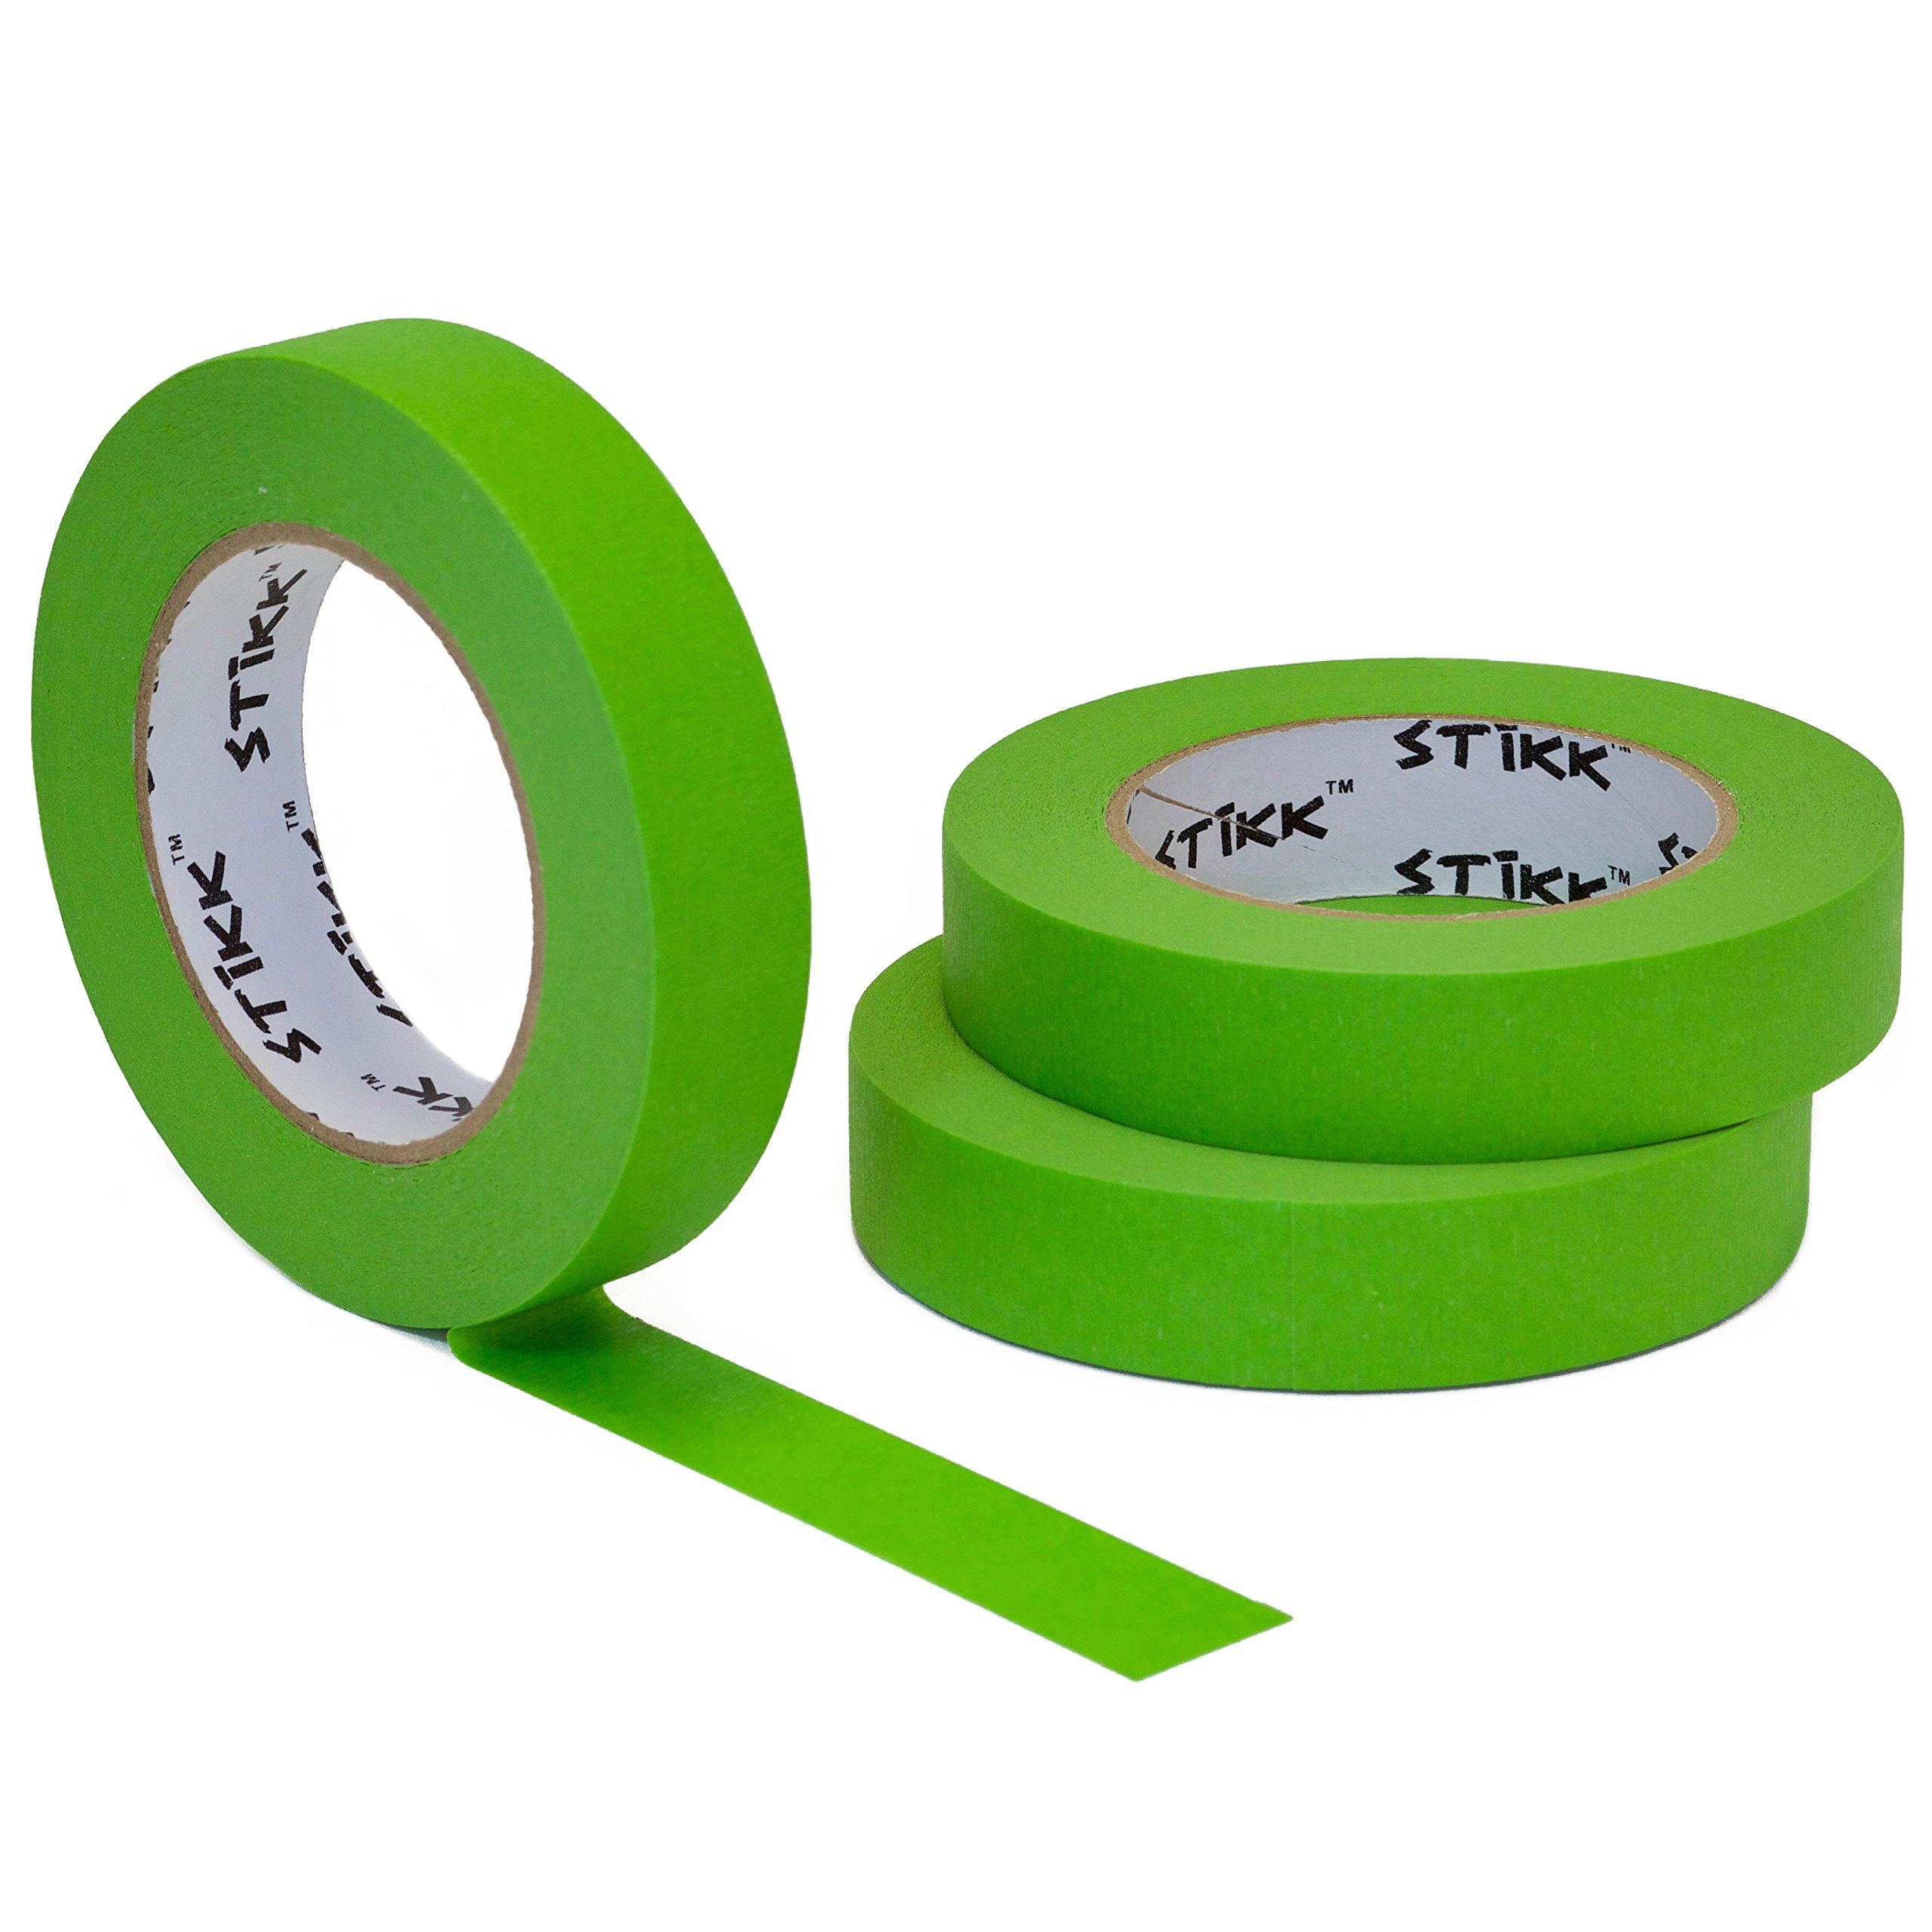 3 Pack 1'' x 60yd STIKK Green Painters Tape 14 Day Clean Release Trim Edge Finishing Masking Tape (.94 IN 24MM)